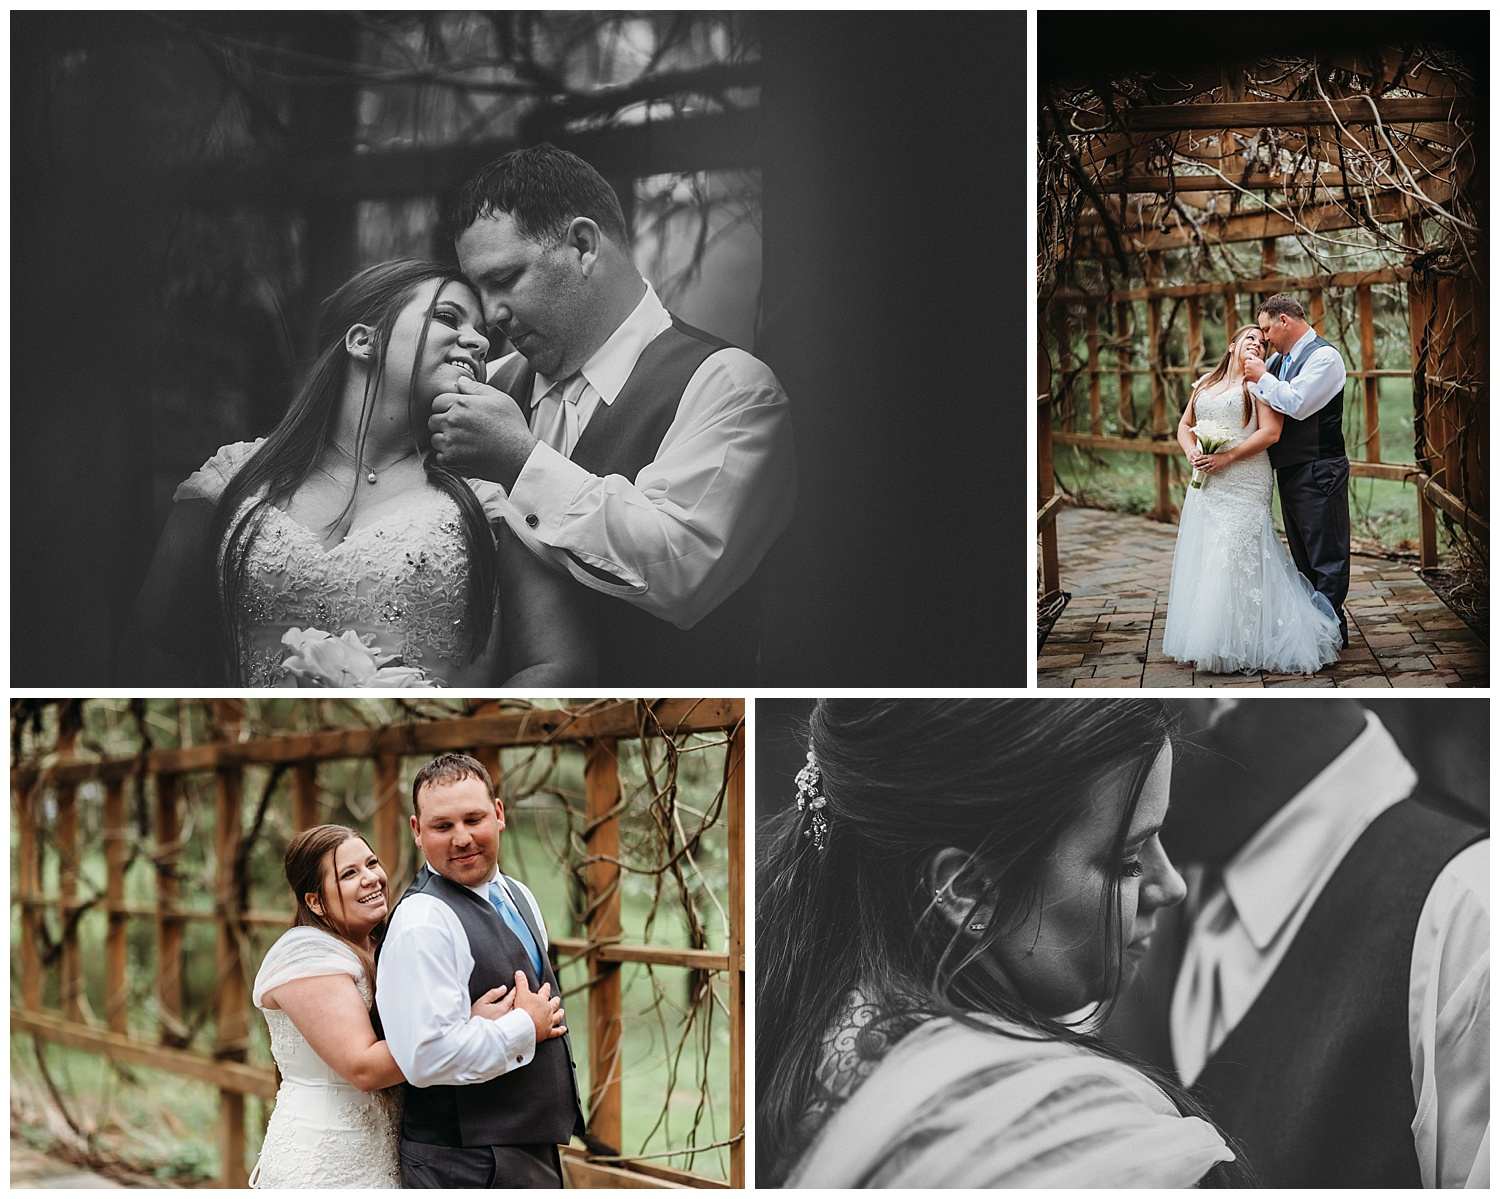 NEPA-wedding-photographer-at-the-Stroudsmoor-Country-Inn-Stroudsburg-PA_0017.jpg